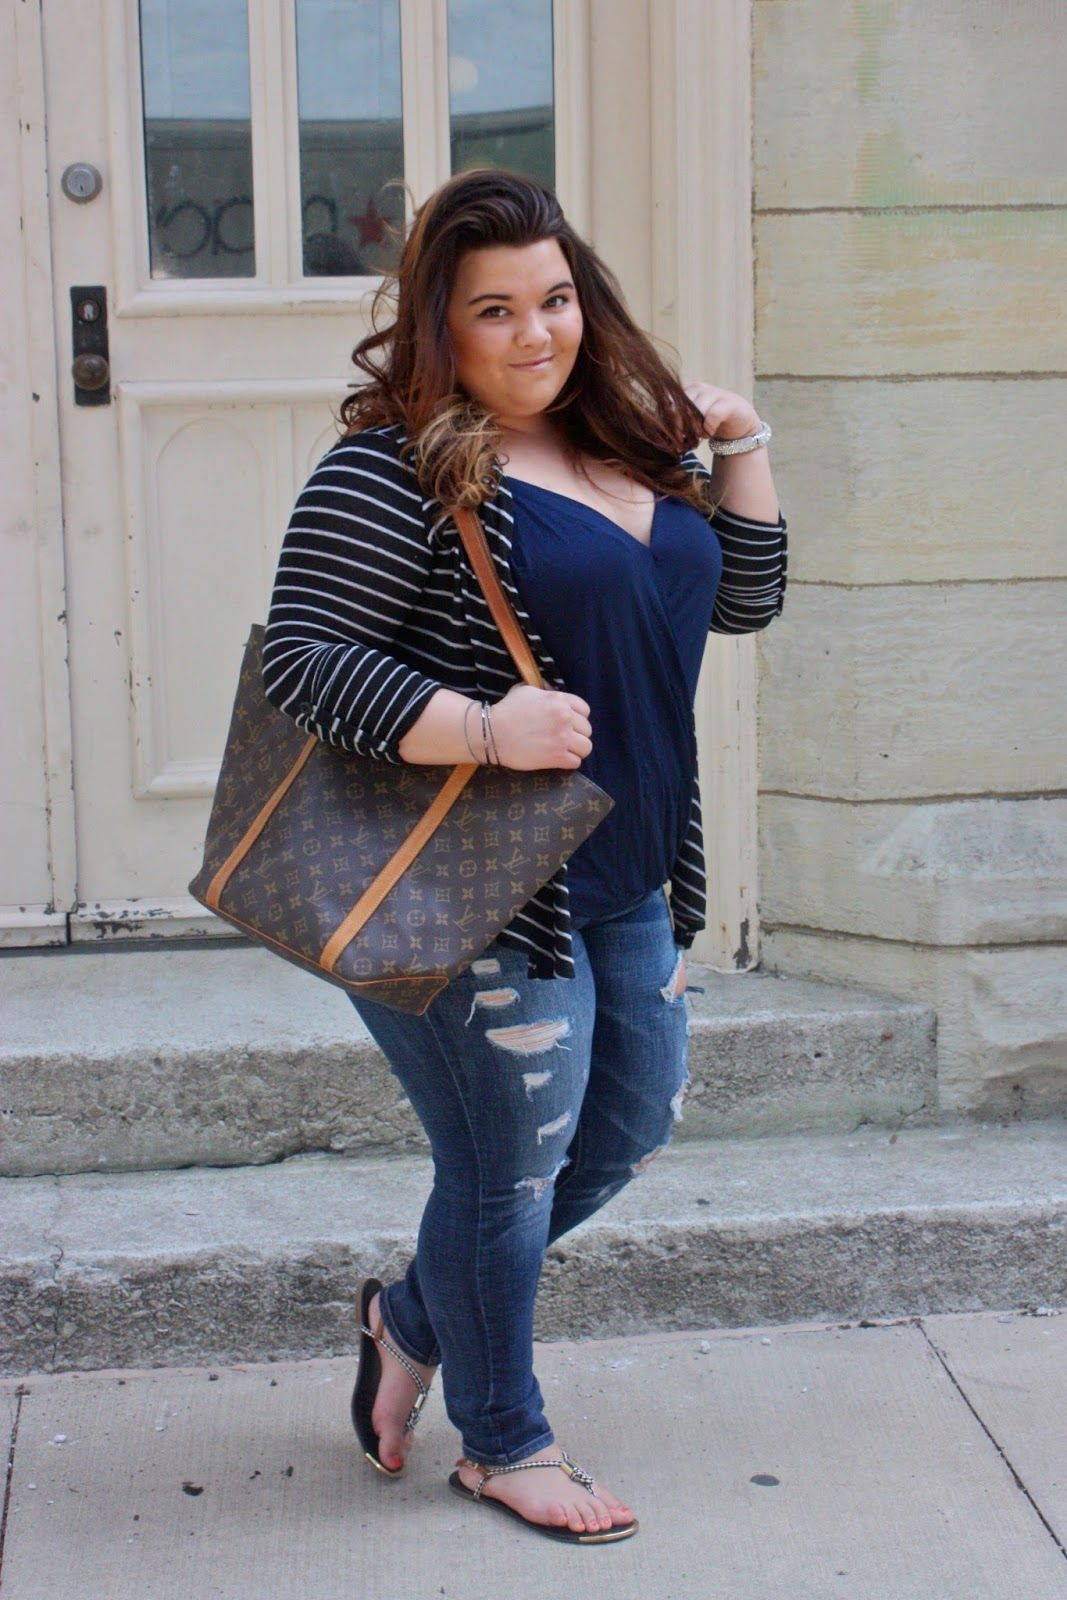 Plus Size Fashion - Sweater Weather | Plus Size Fashion ...